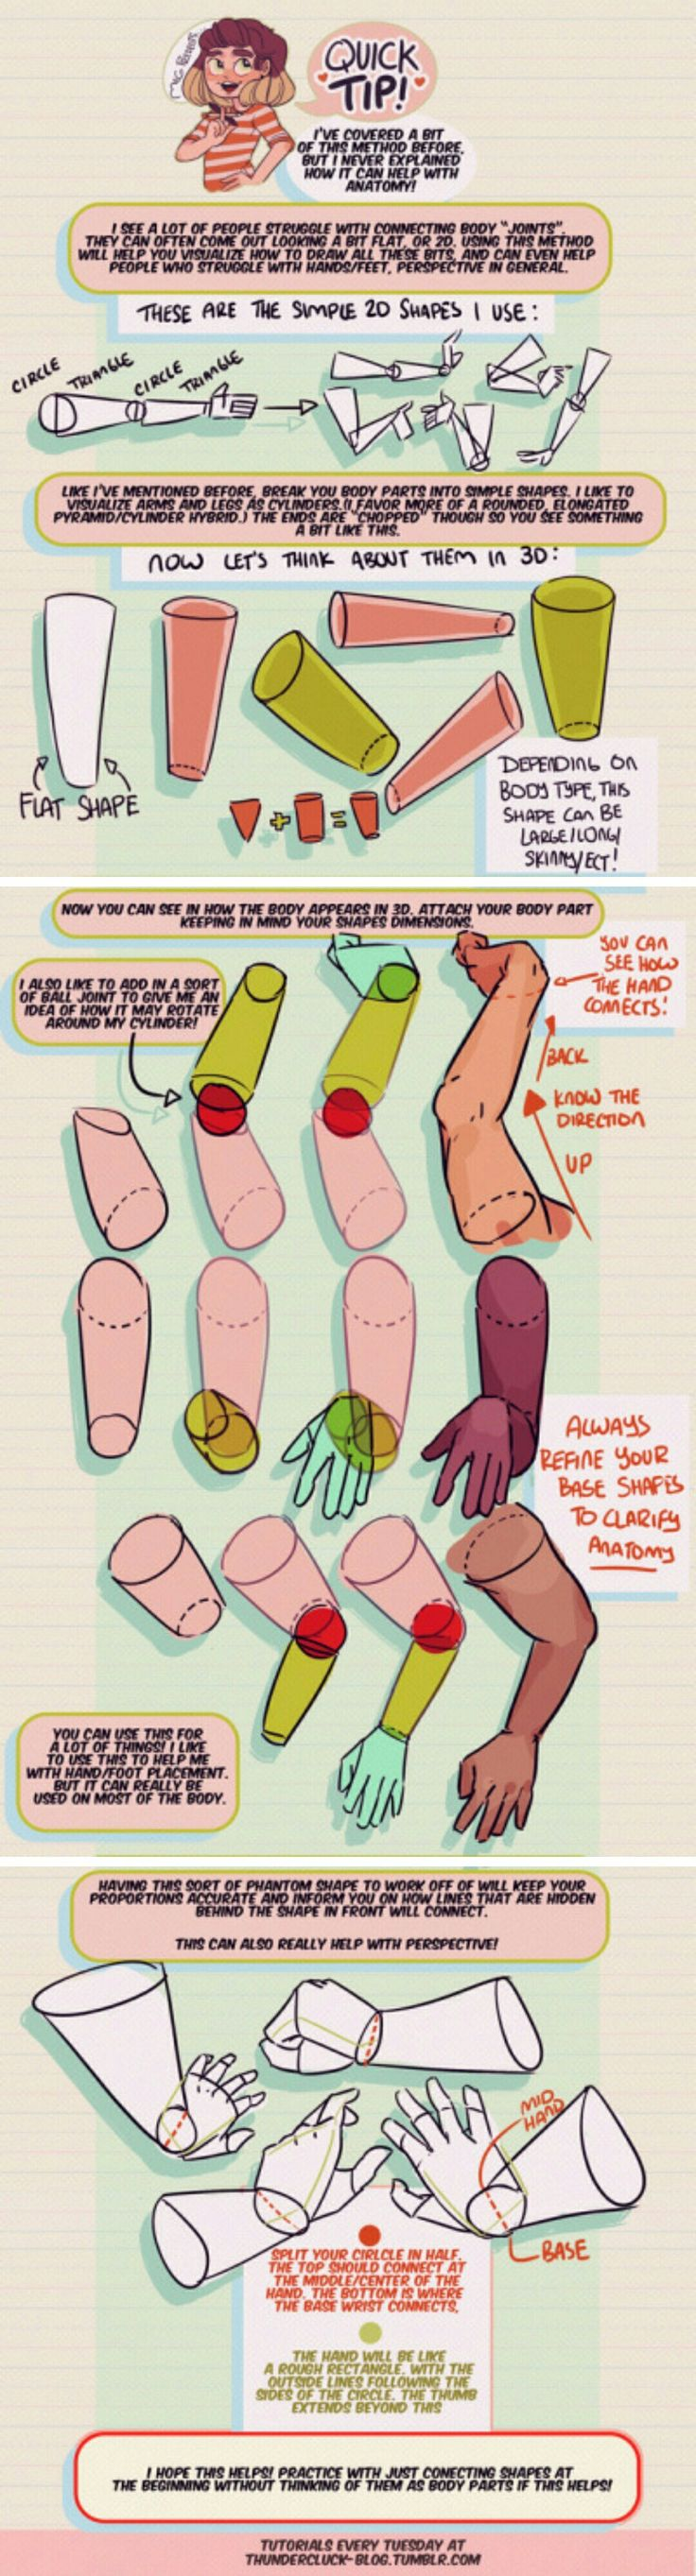 A quick tip to drawing limbs.